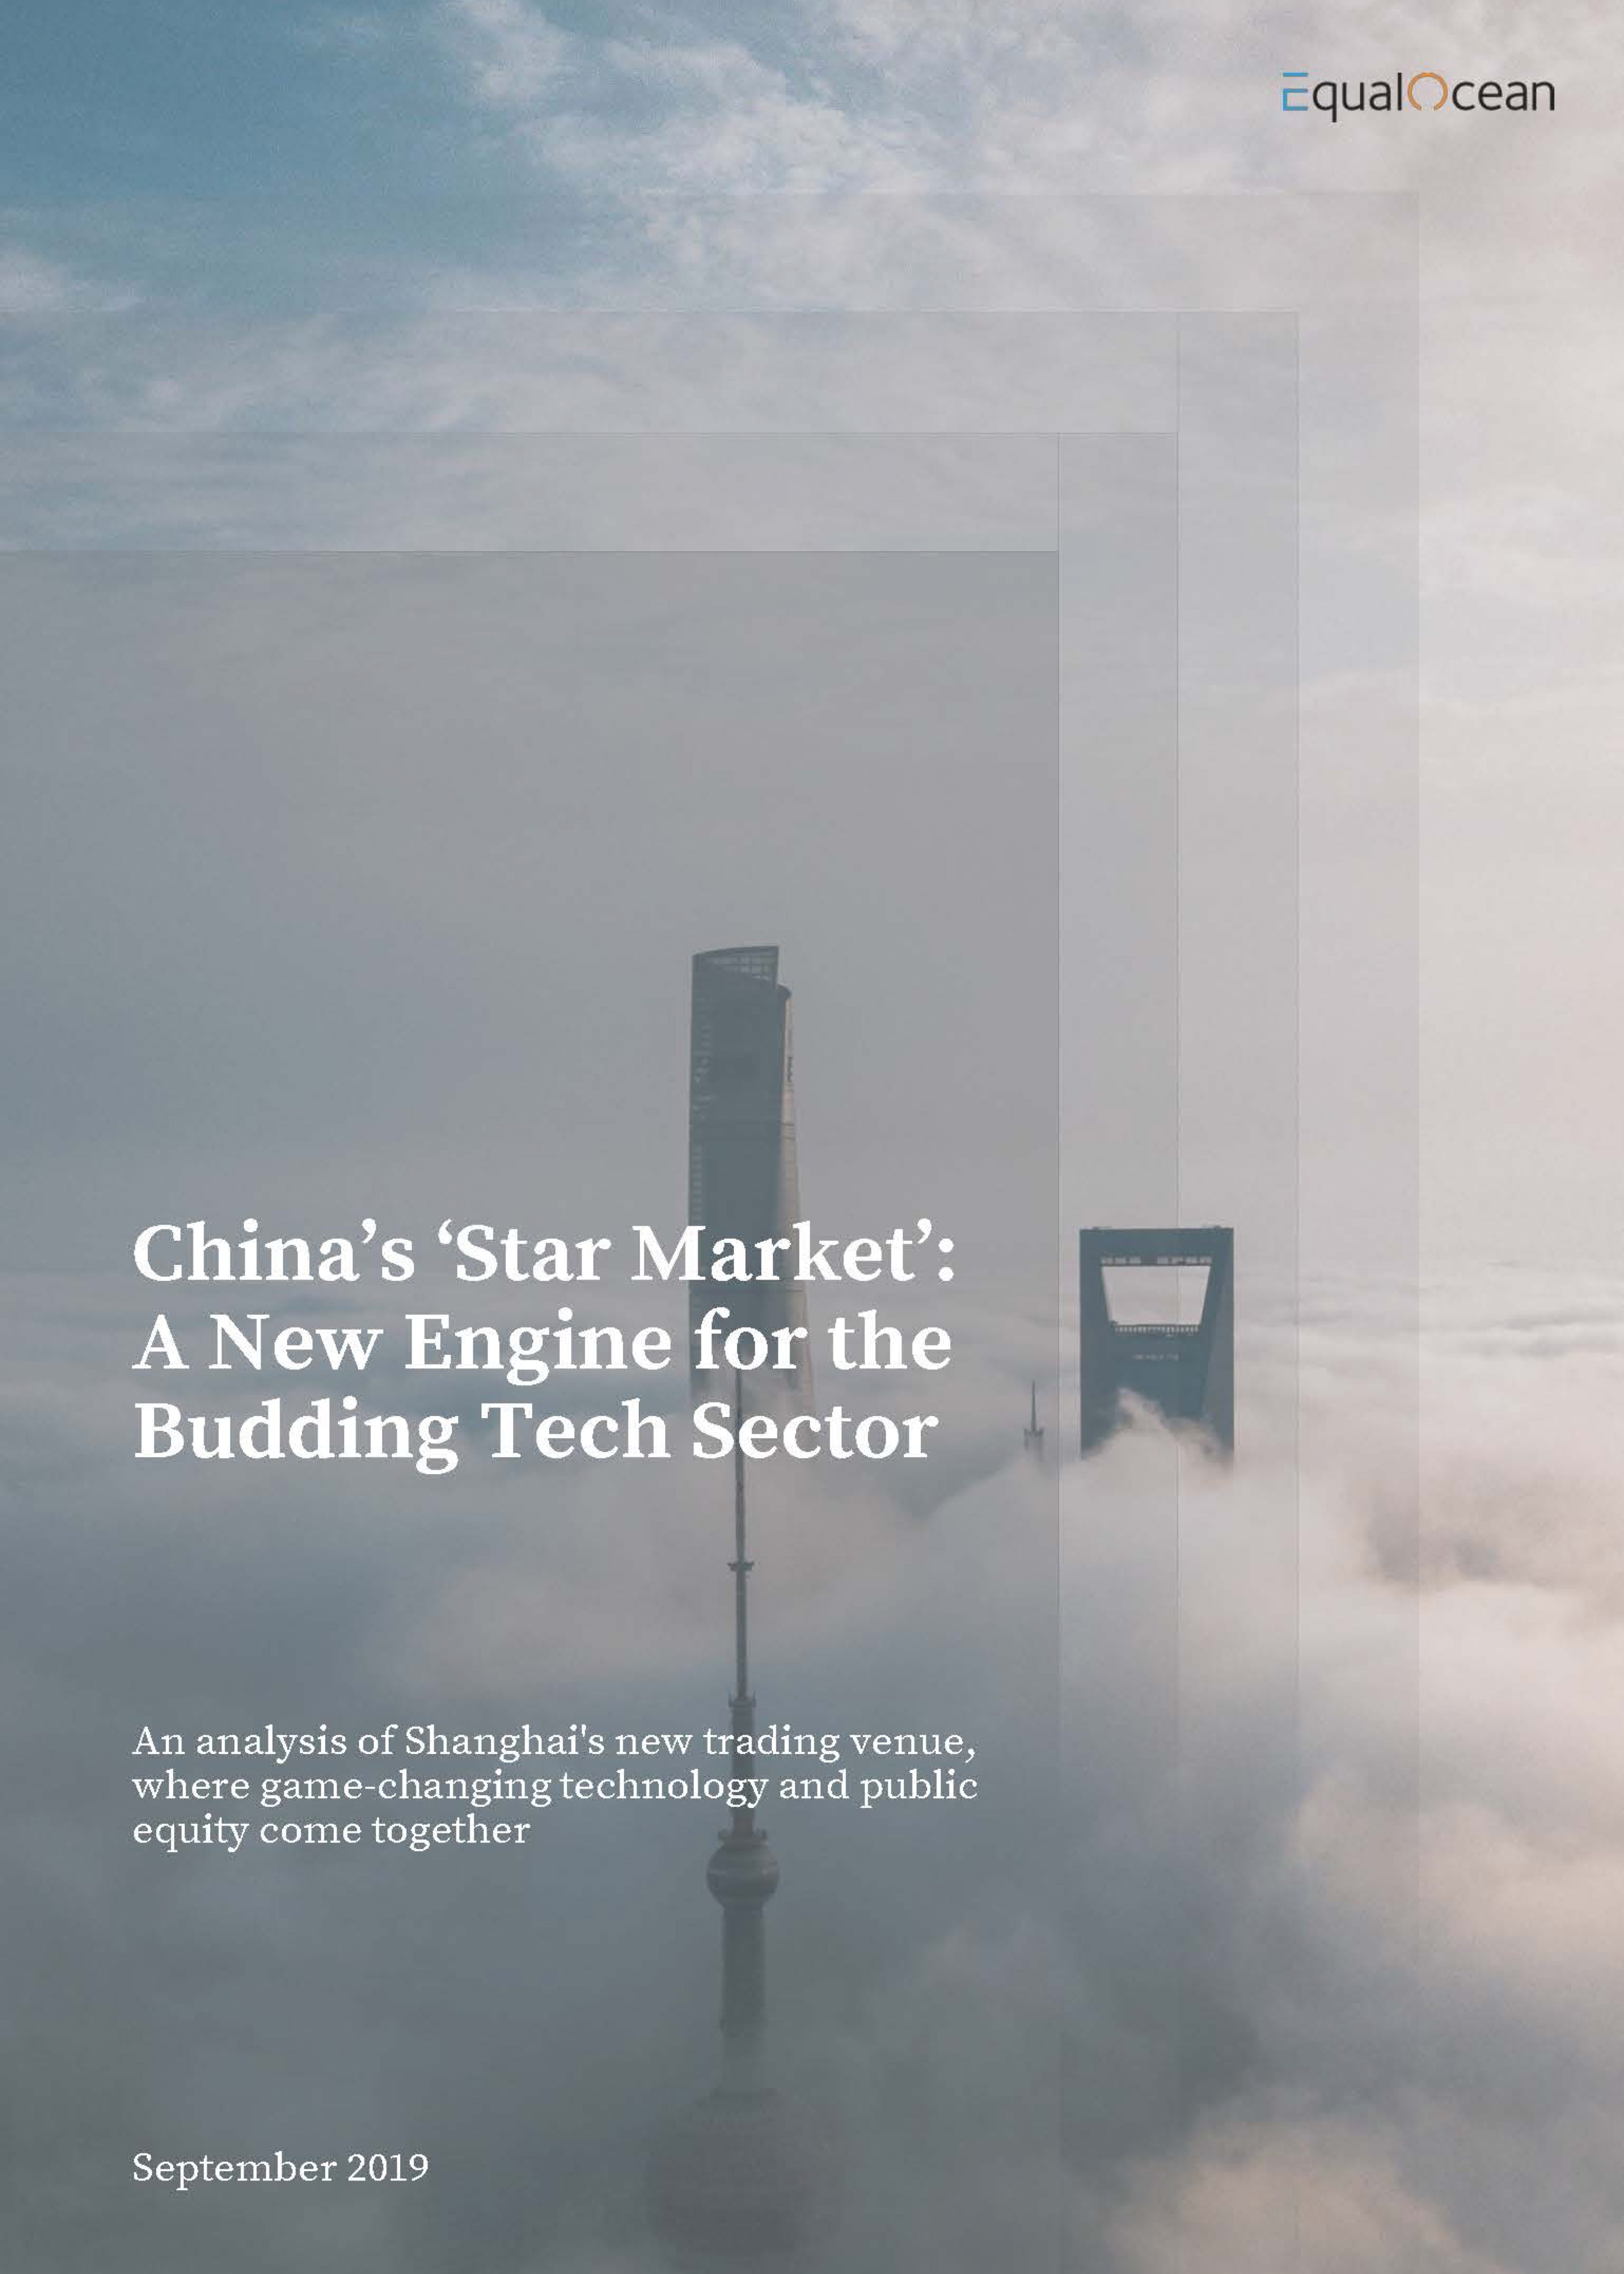 China's 'Star Market': A New Engine for the Budding Tech Sector